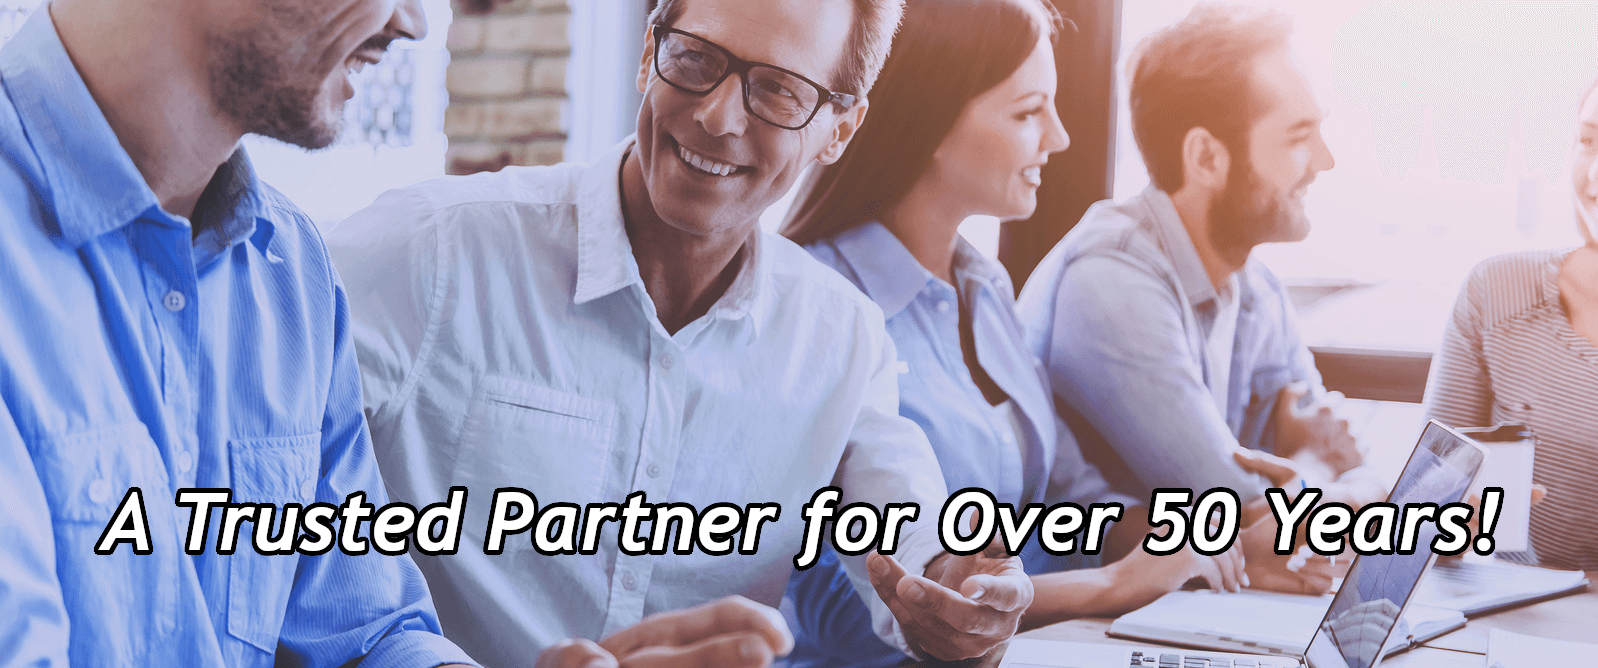 A Trusted Partner for Over 50 Years!